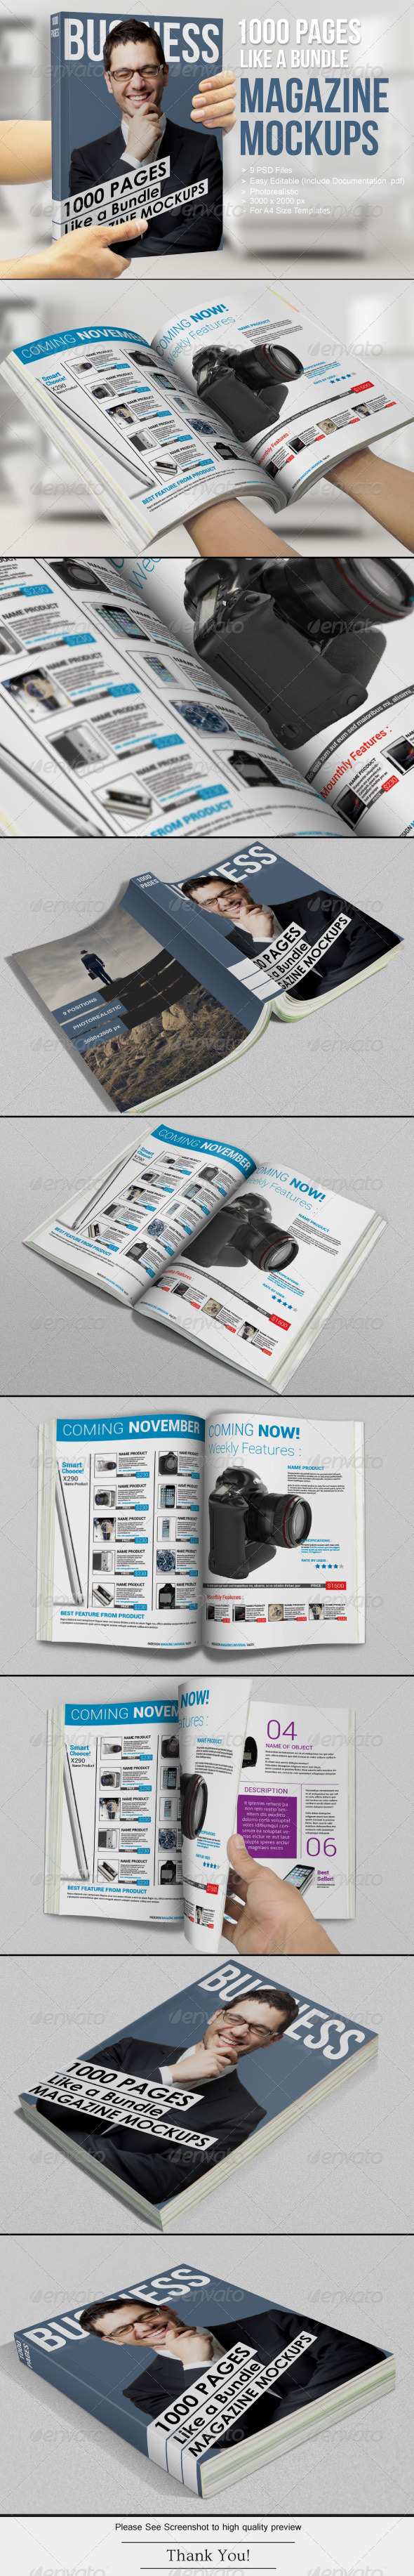 GraphicRiver 1000 Pages Magazine Mockups 6883488